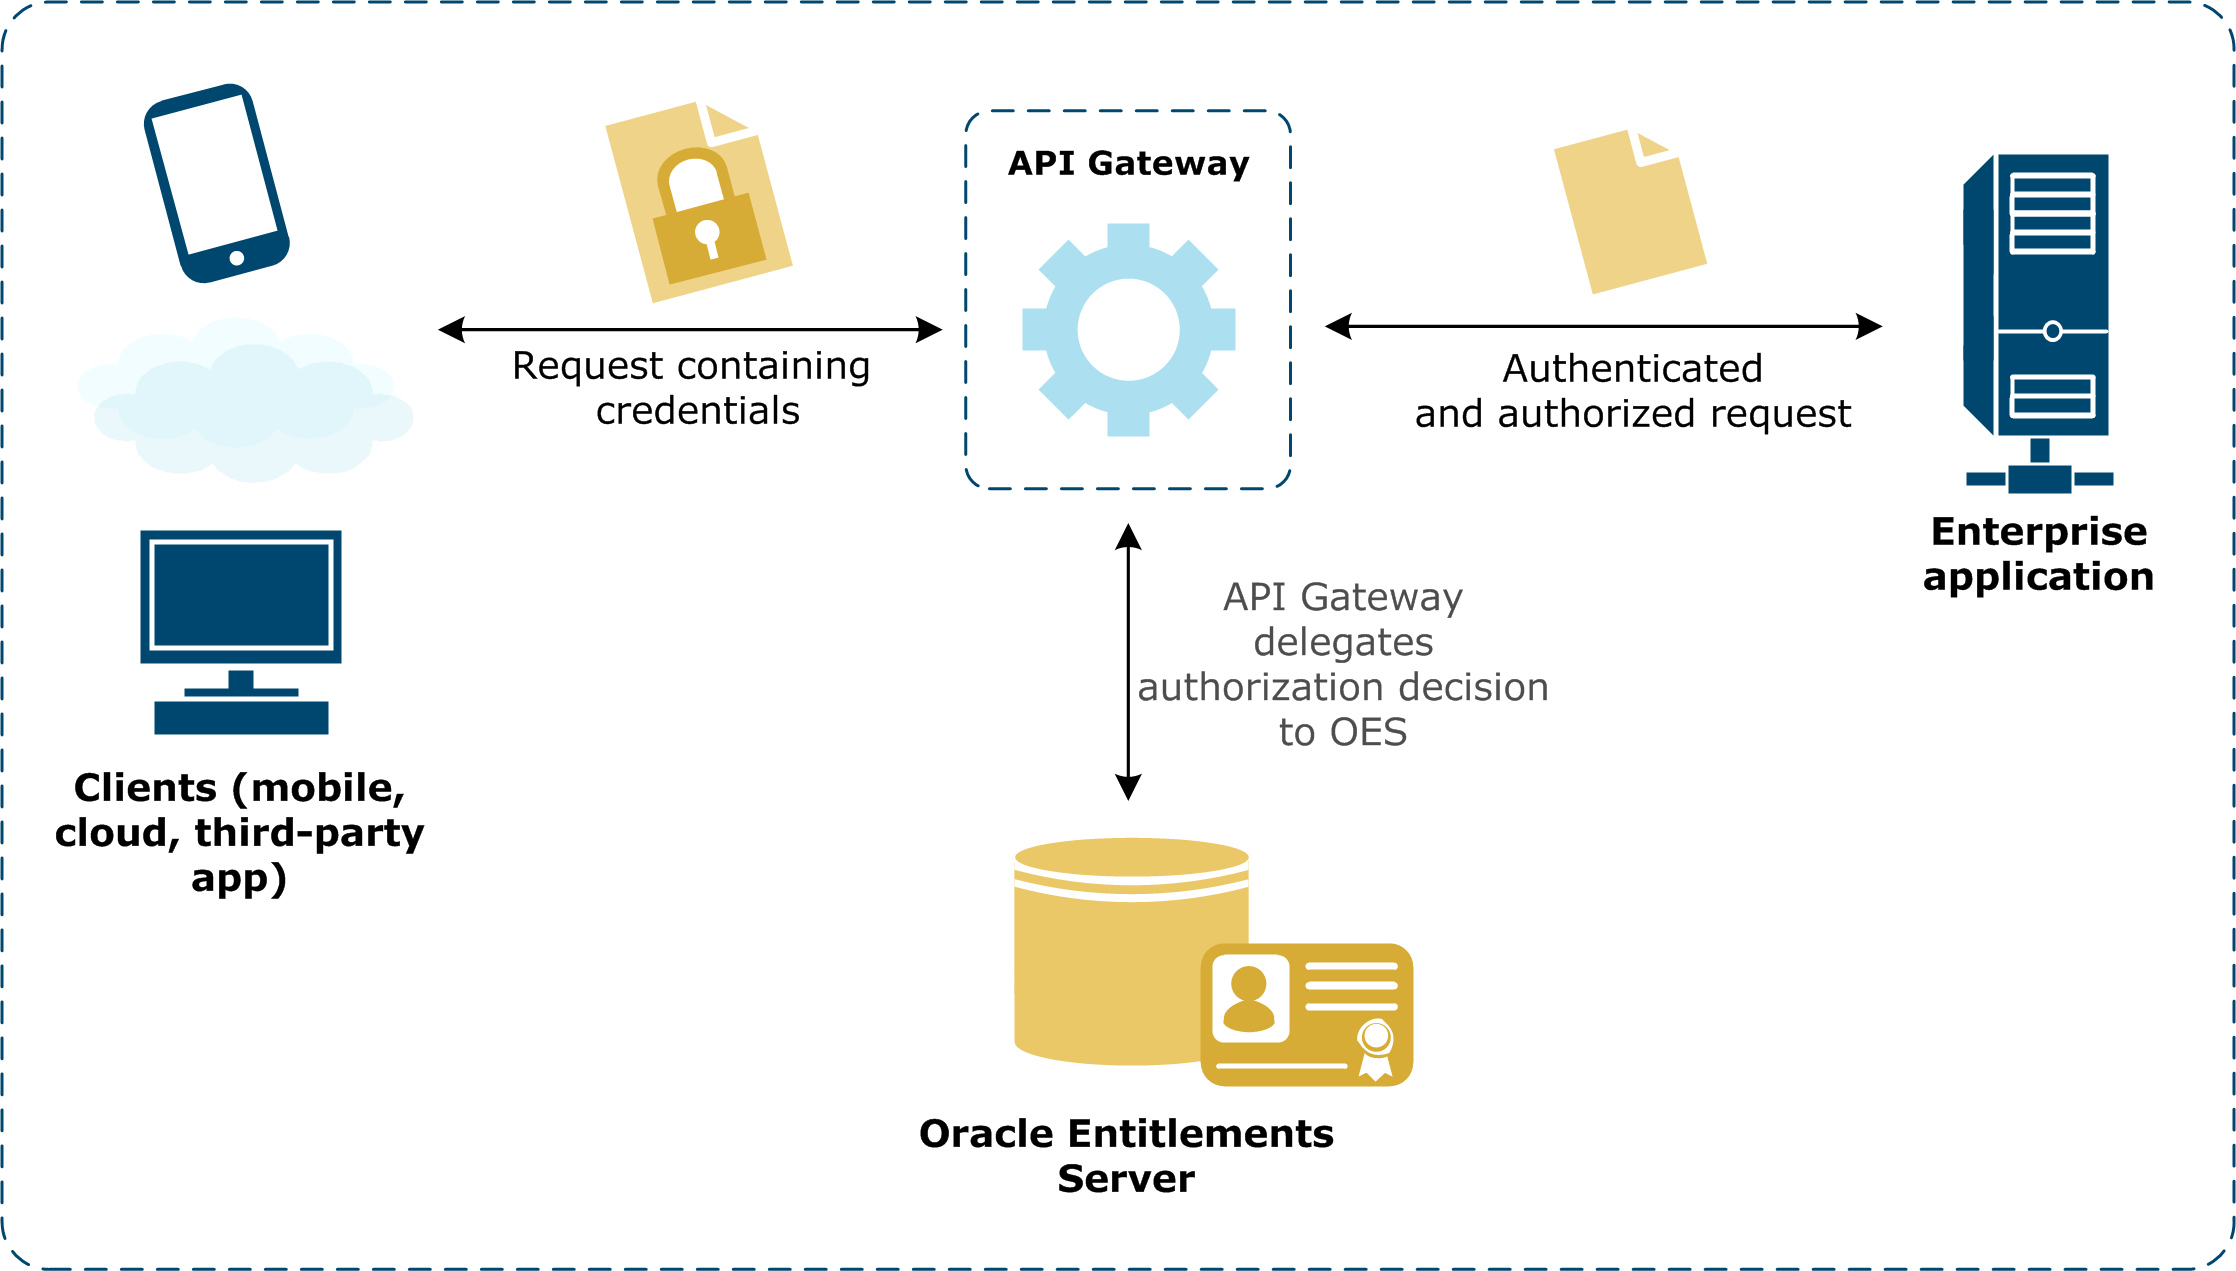 Authorize and authenticate a user